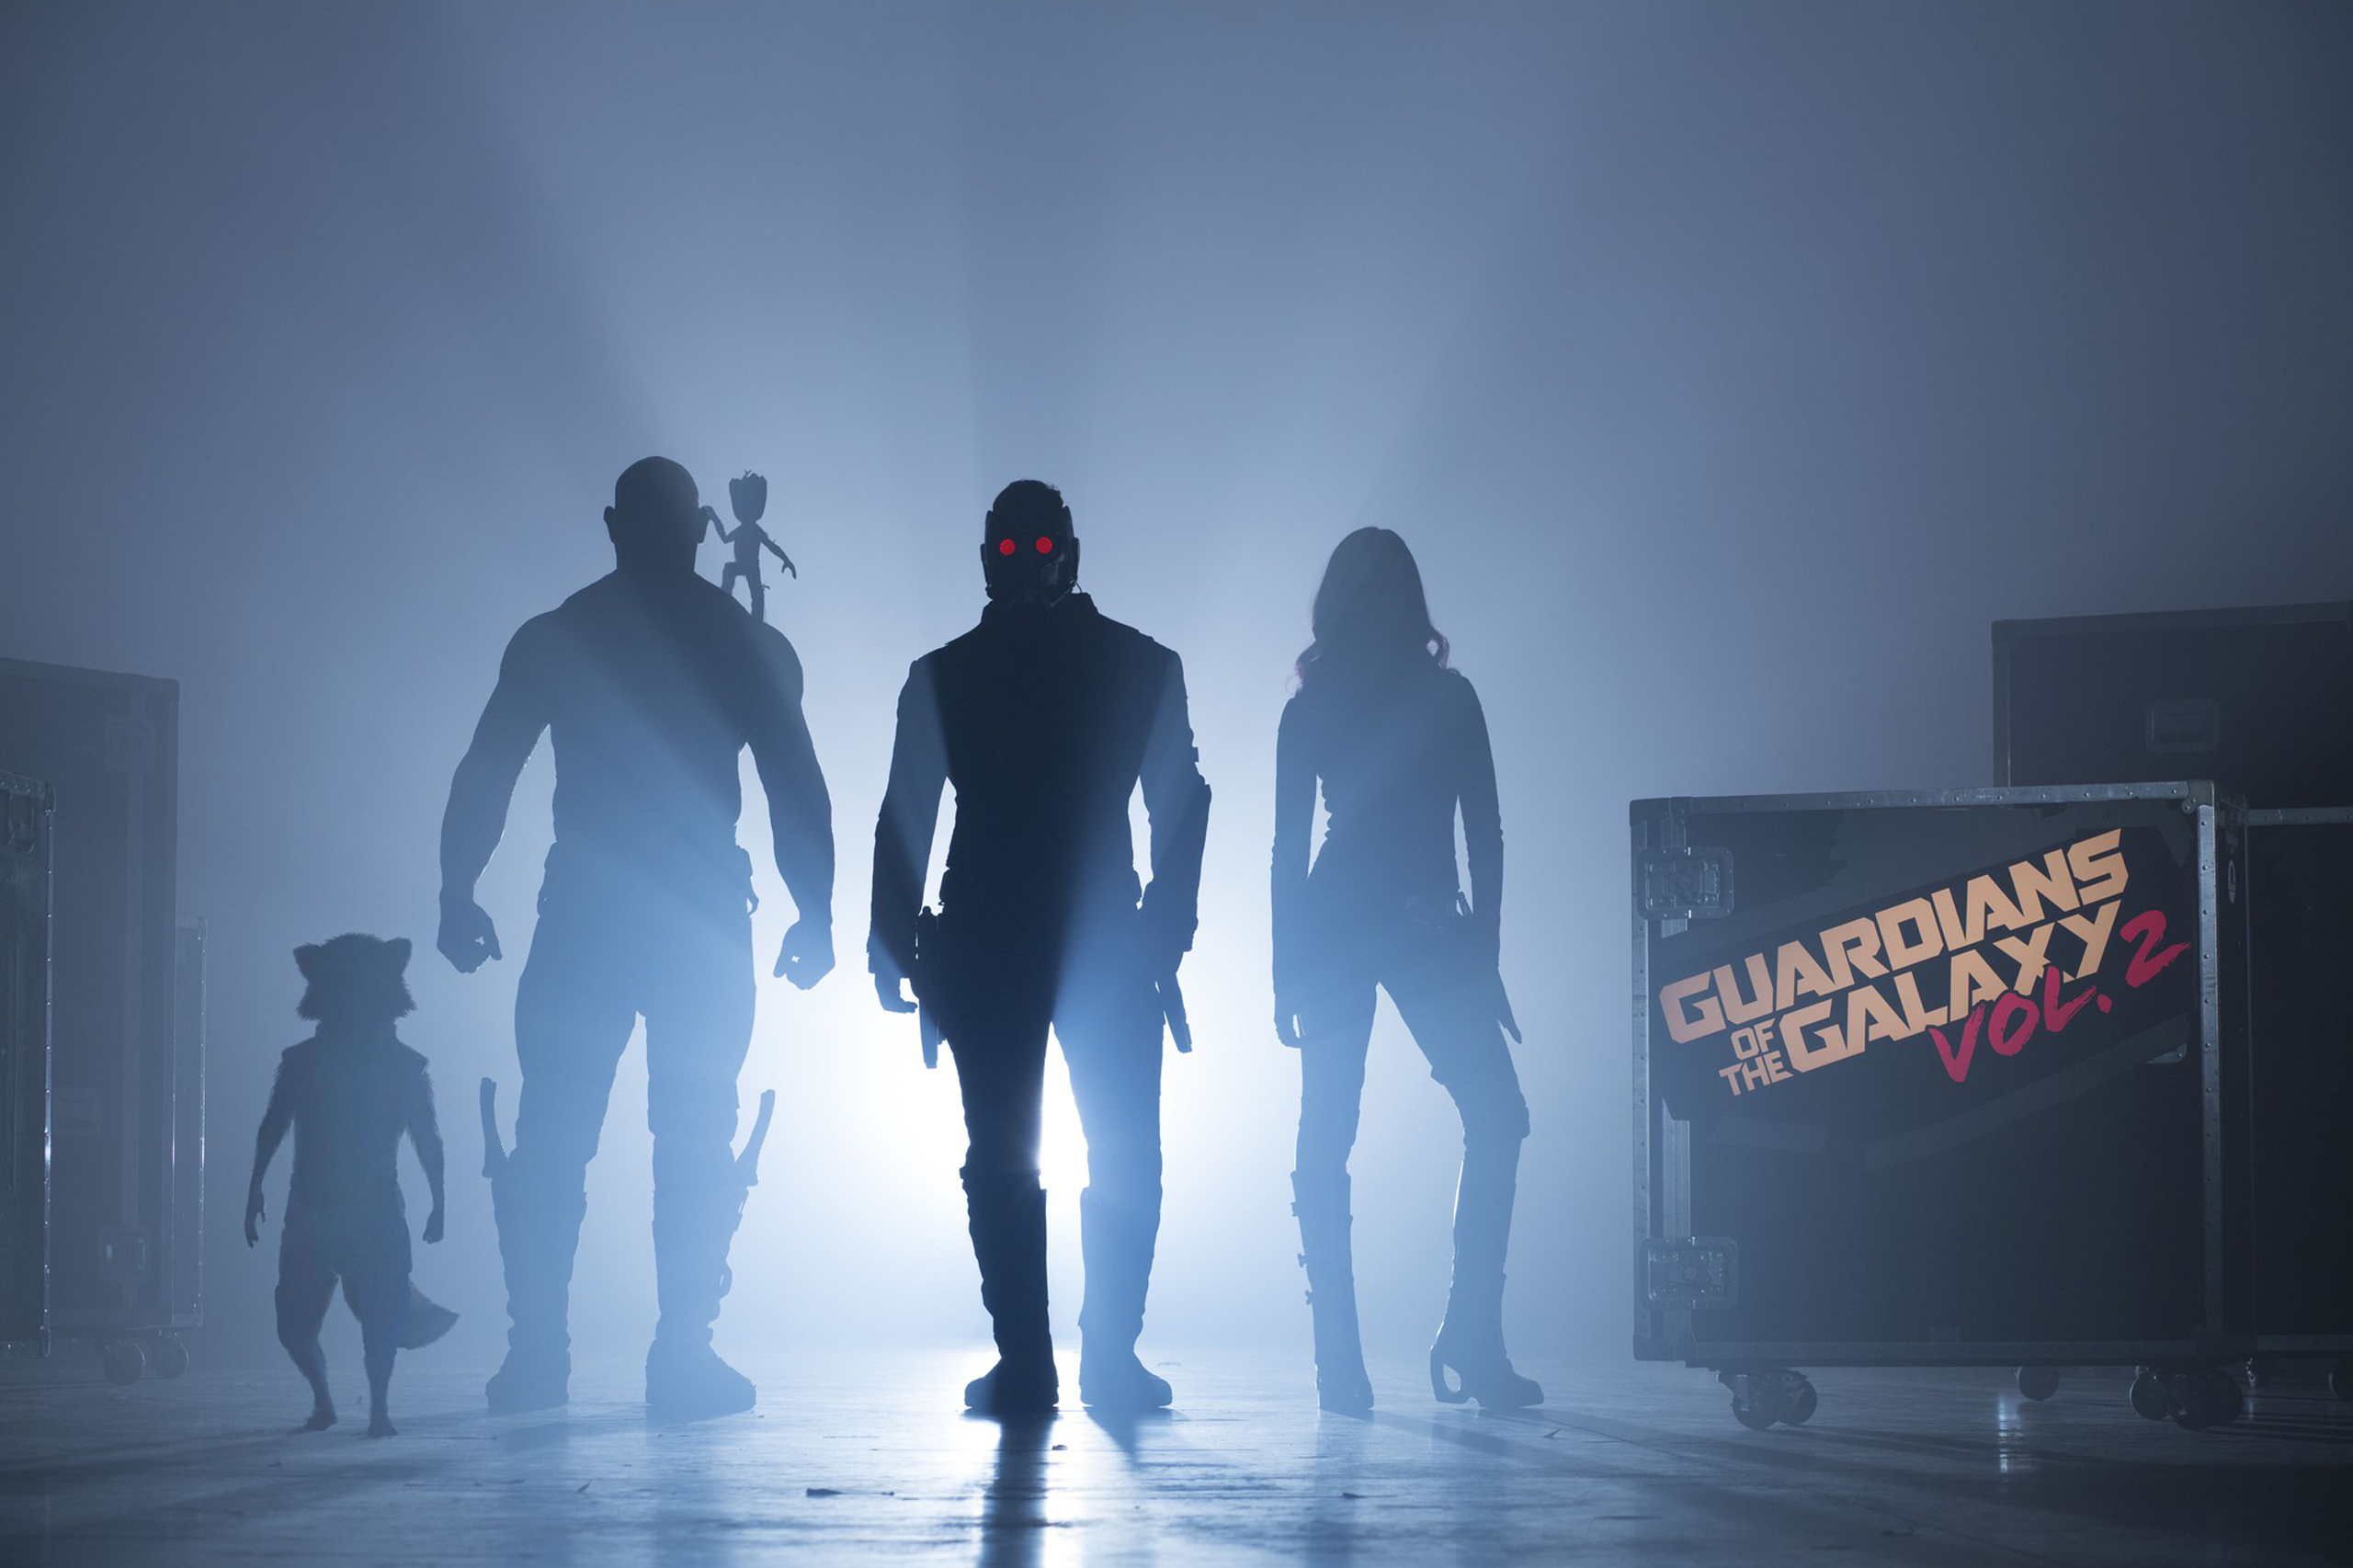 Guardians Of The Galaxy Vol. 2Start of Production ImageL to R: Rocket (voiced by Bradley Cooper), Drax (Dave Bautista), Groot (voiced by Vin Diesel), Peter Quill/Star-Lord (Chris Pratt) and Gamora (Zoe Saldana)©Marvel 2017